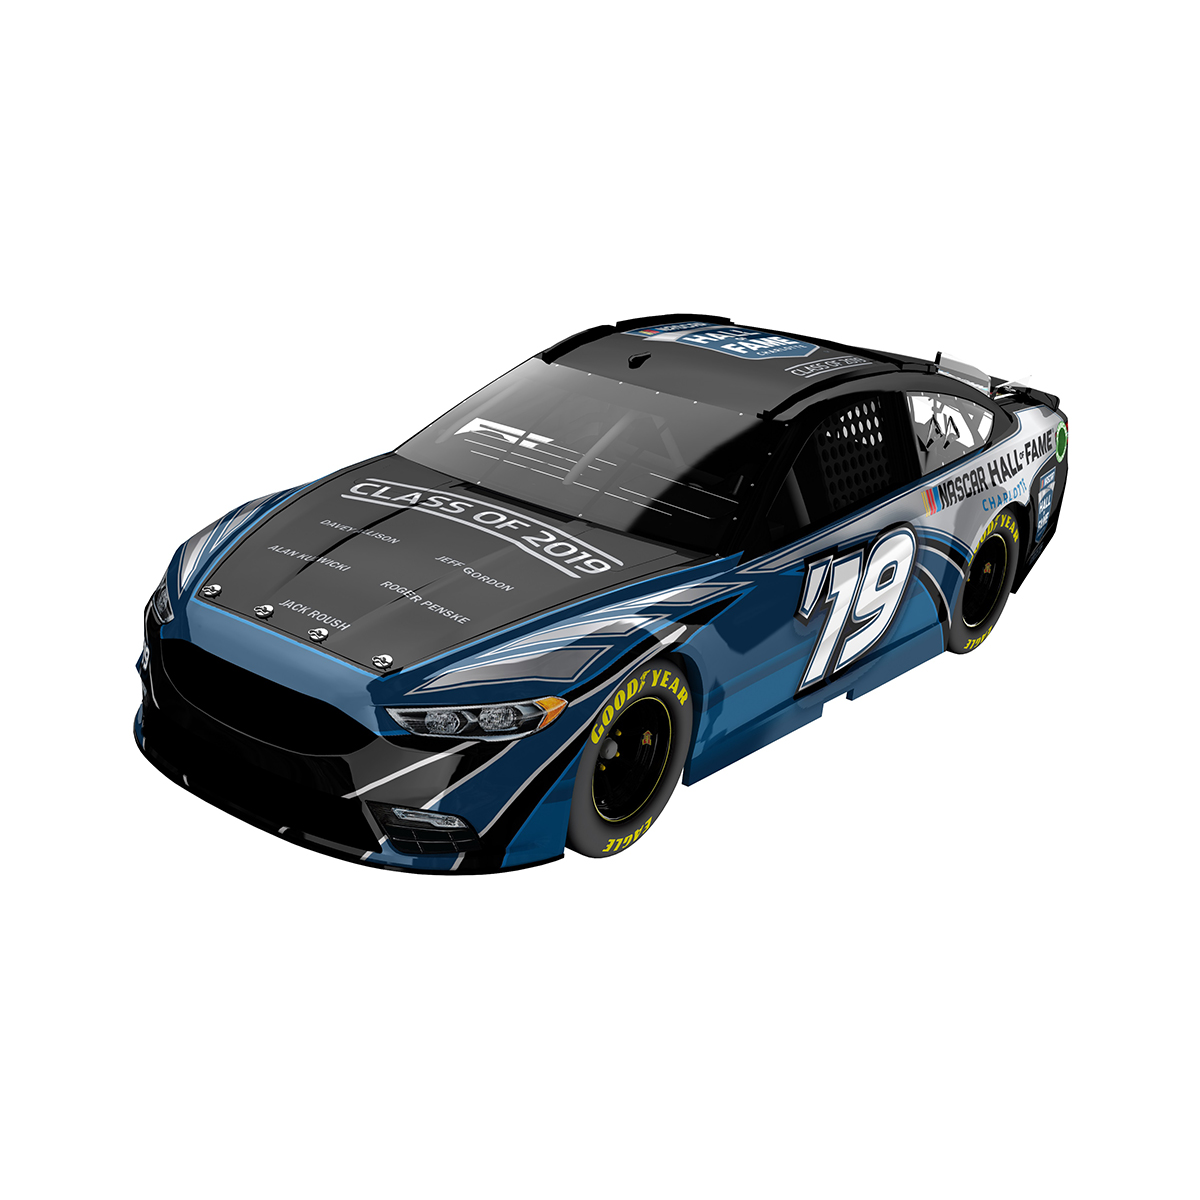 NASCAR Hall of Fame Class of 2019 ELITE 1:24 Scale Die Cast